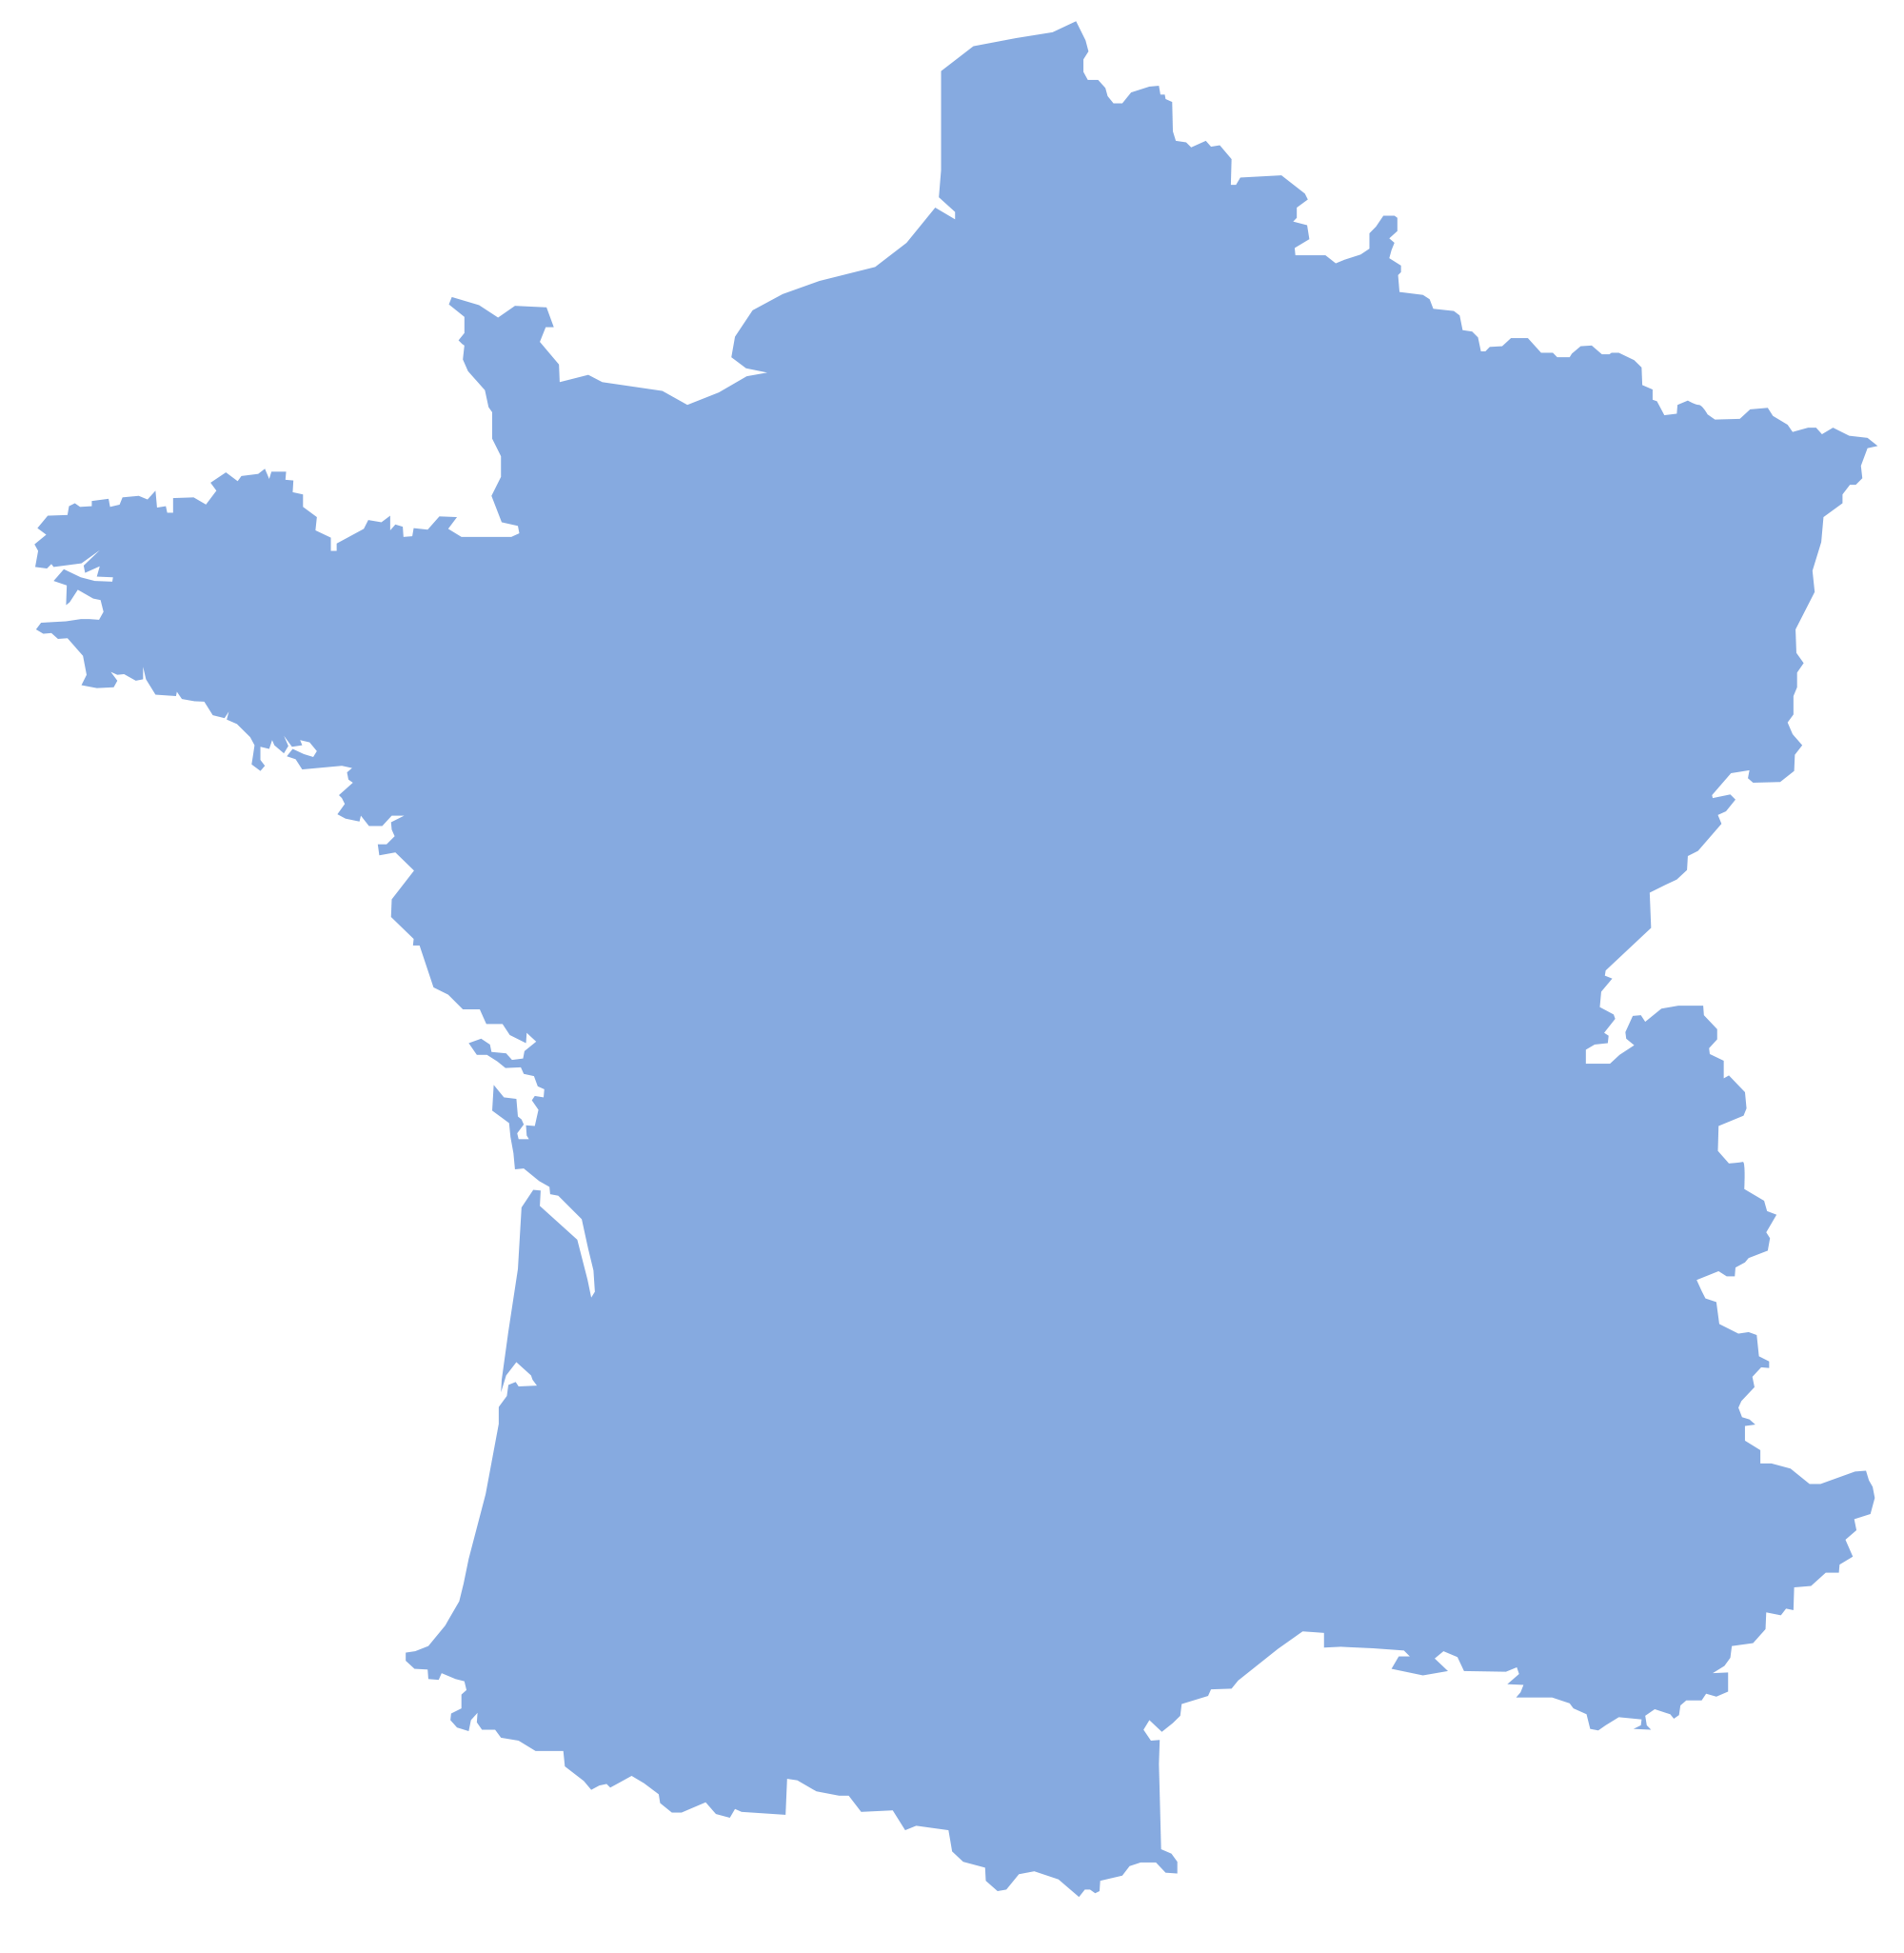 Postit vector blank. File france map no